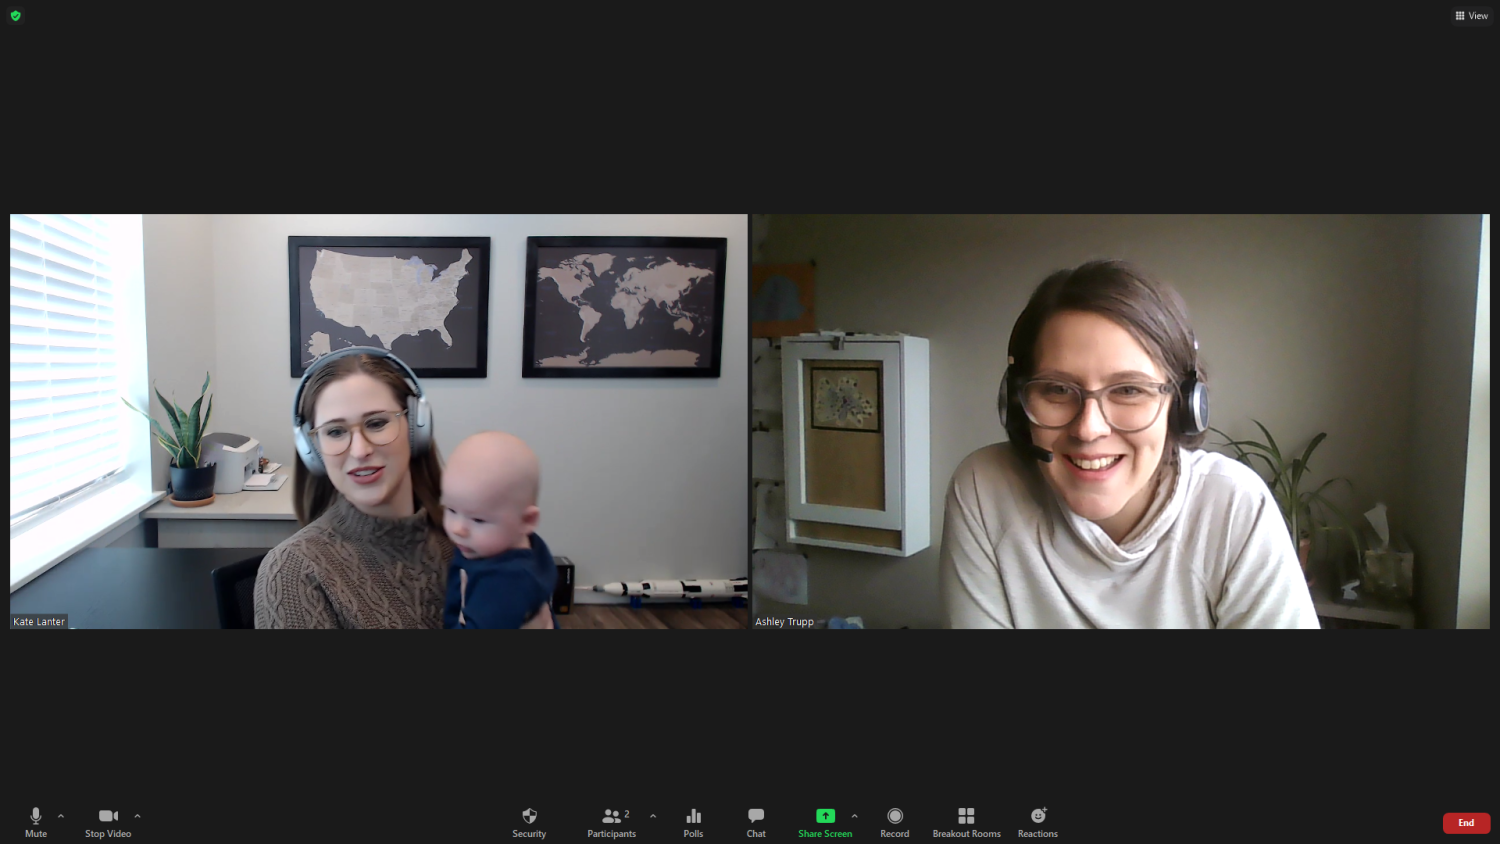 Kate Lanter holding baby while on Zoom call